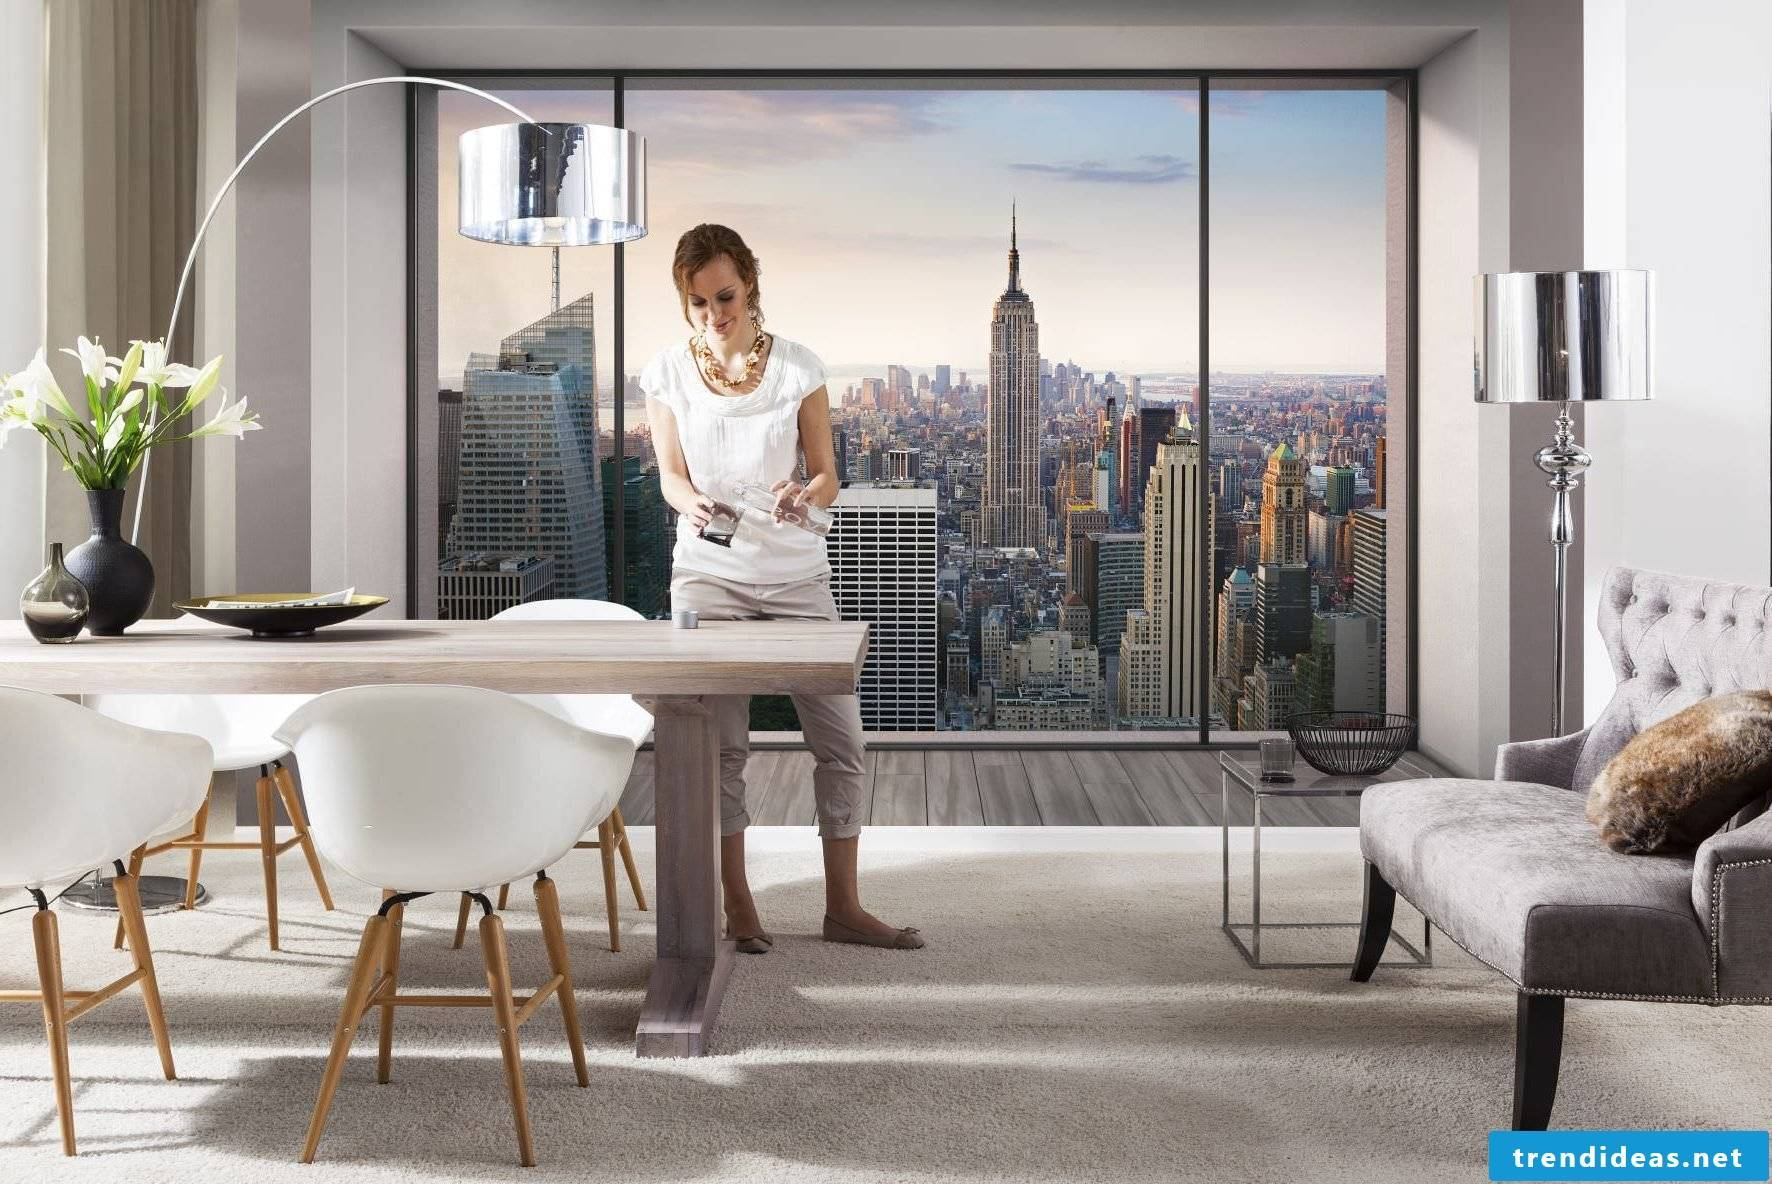 The urban style vinyl photo wallpaper is the face of the new home trend